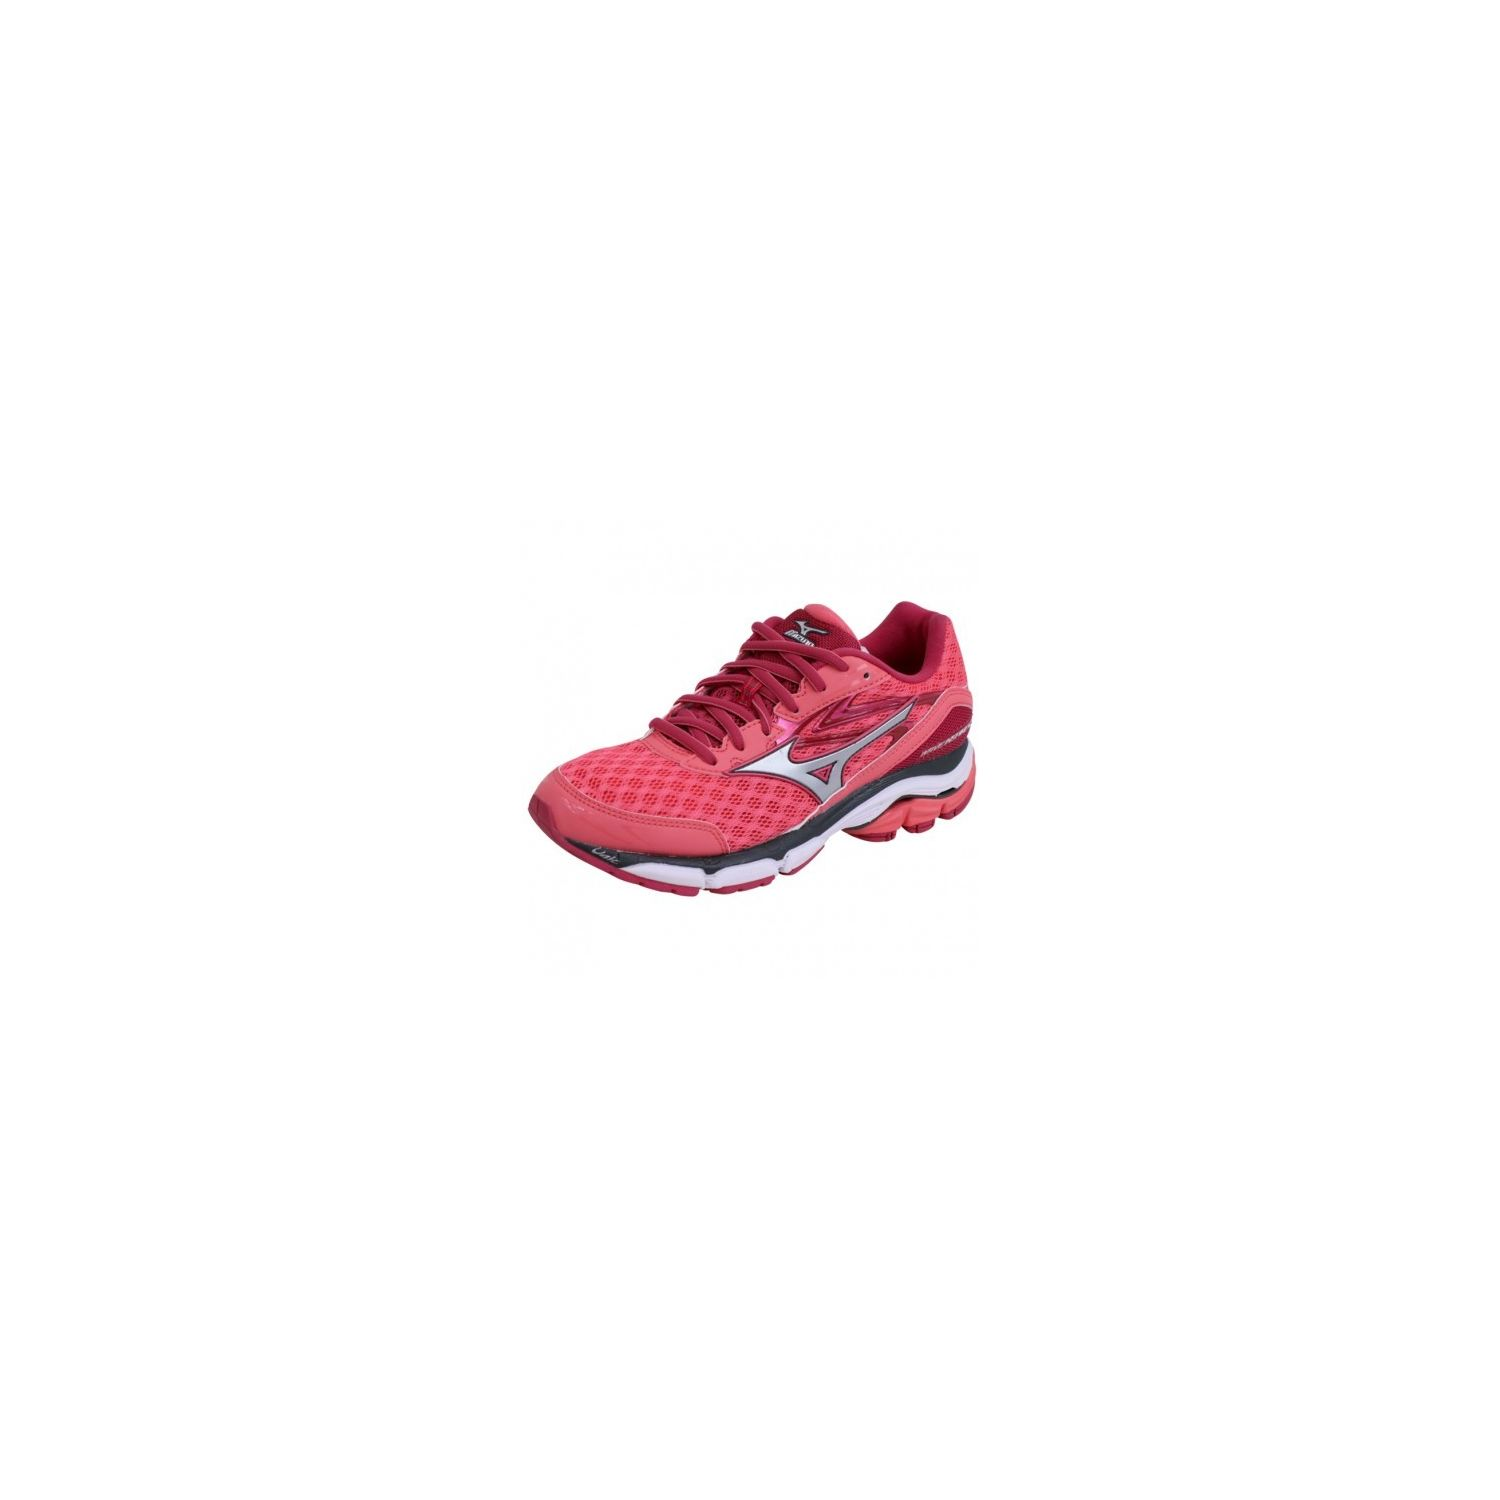 Wave Multicouleur 12 Inspire Running Chaussures Femme Mizuno nYqp5Ww6xv